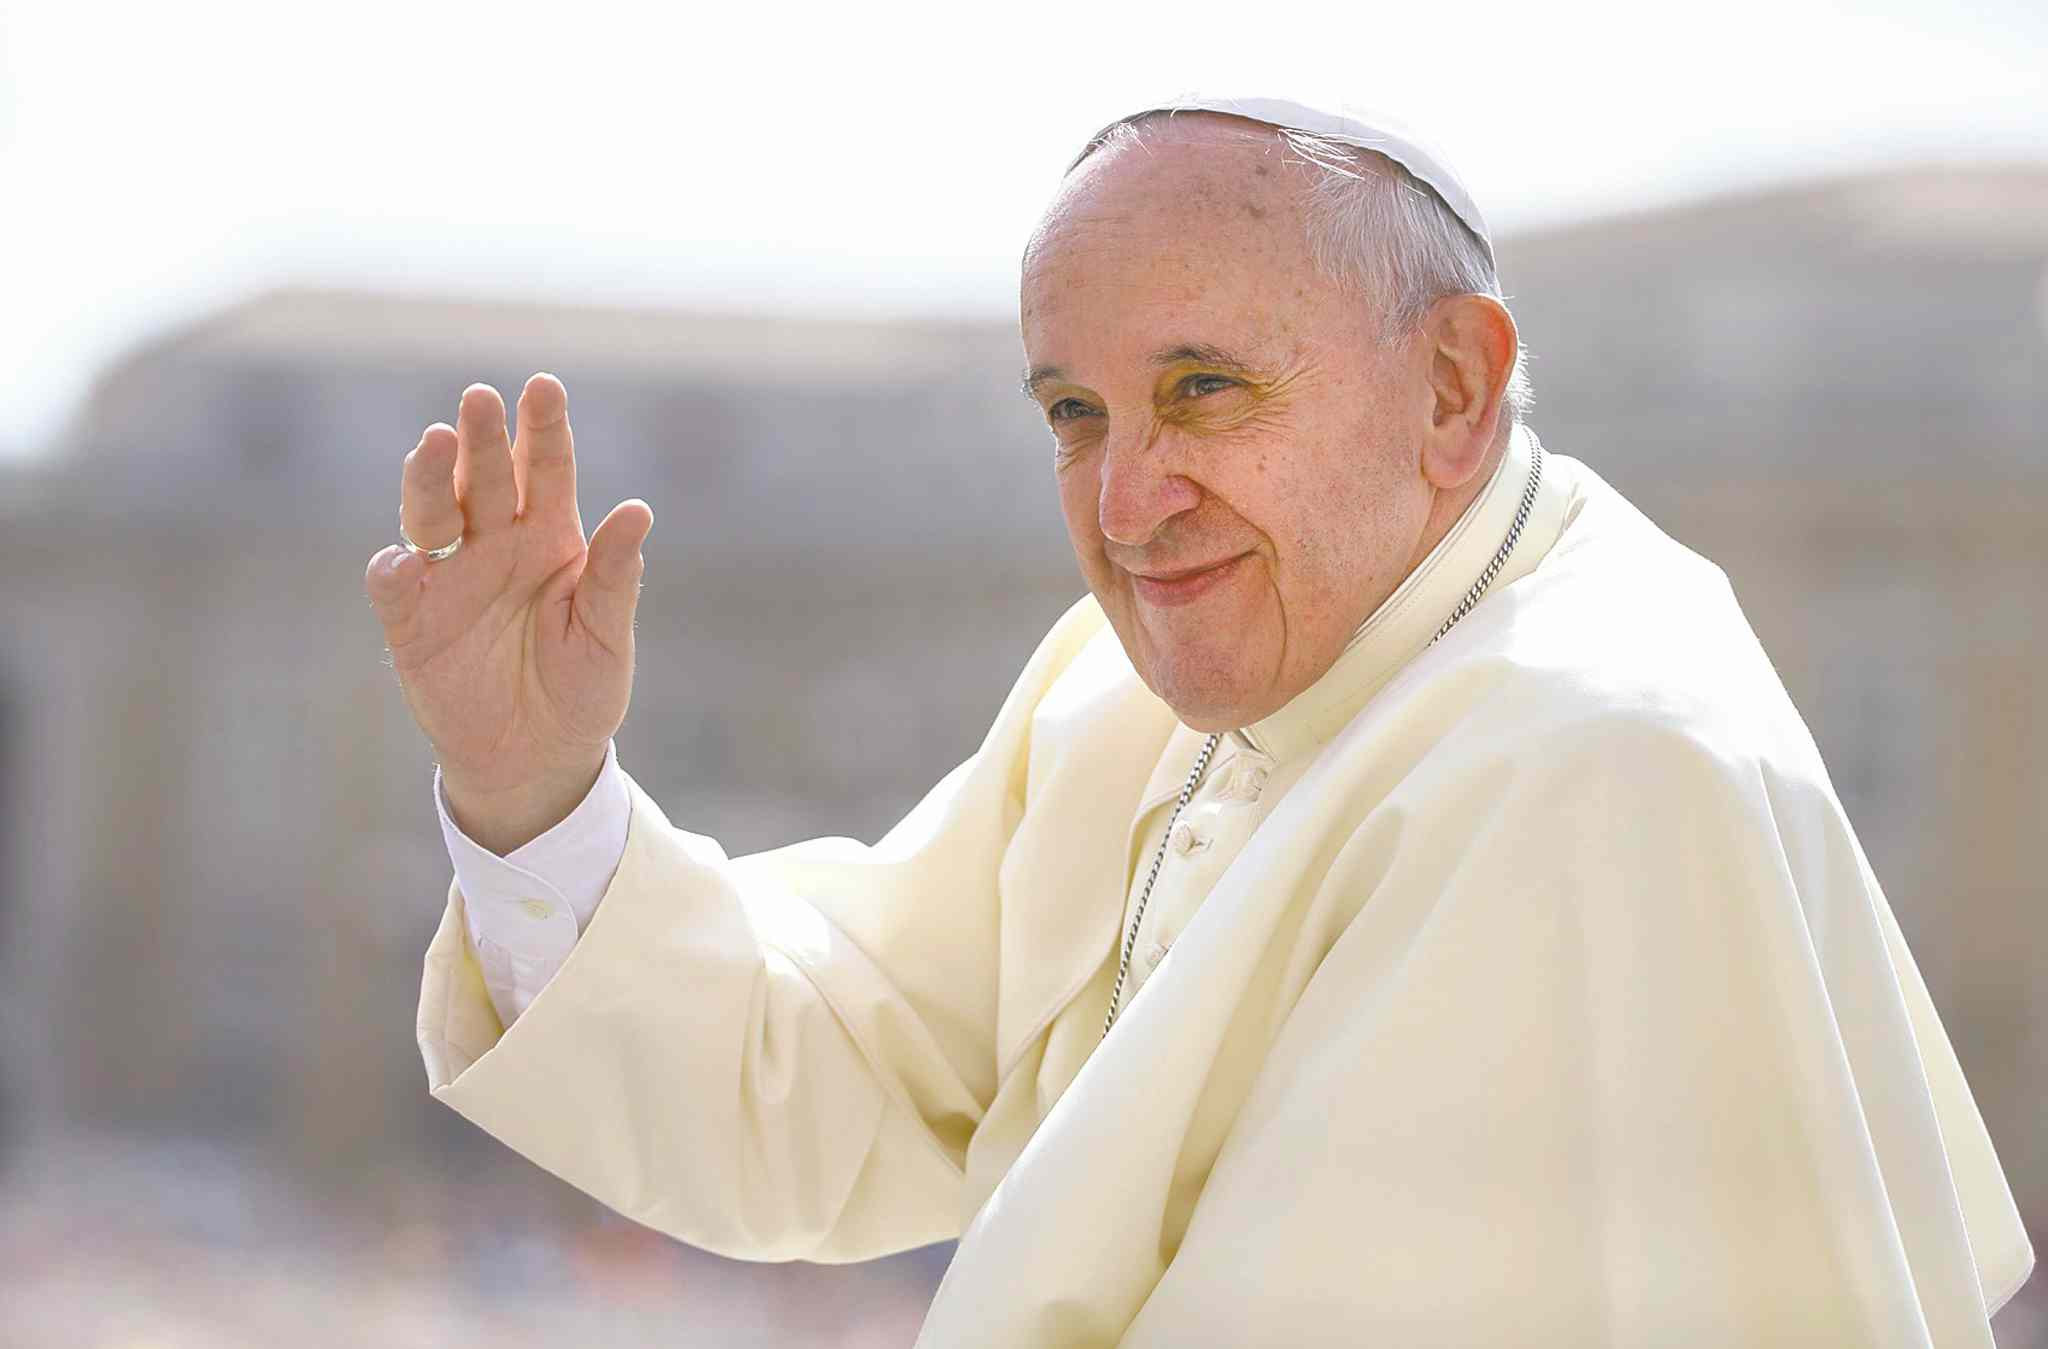 Unlike his predecessors, Pope Francis may be more open to discussions regarding the role of celibacy in the church.